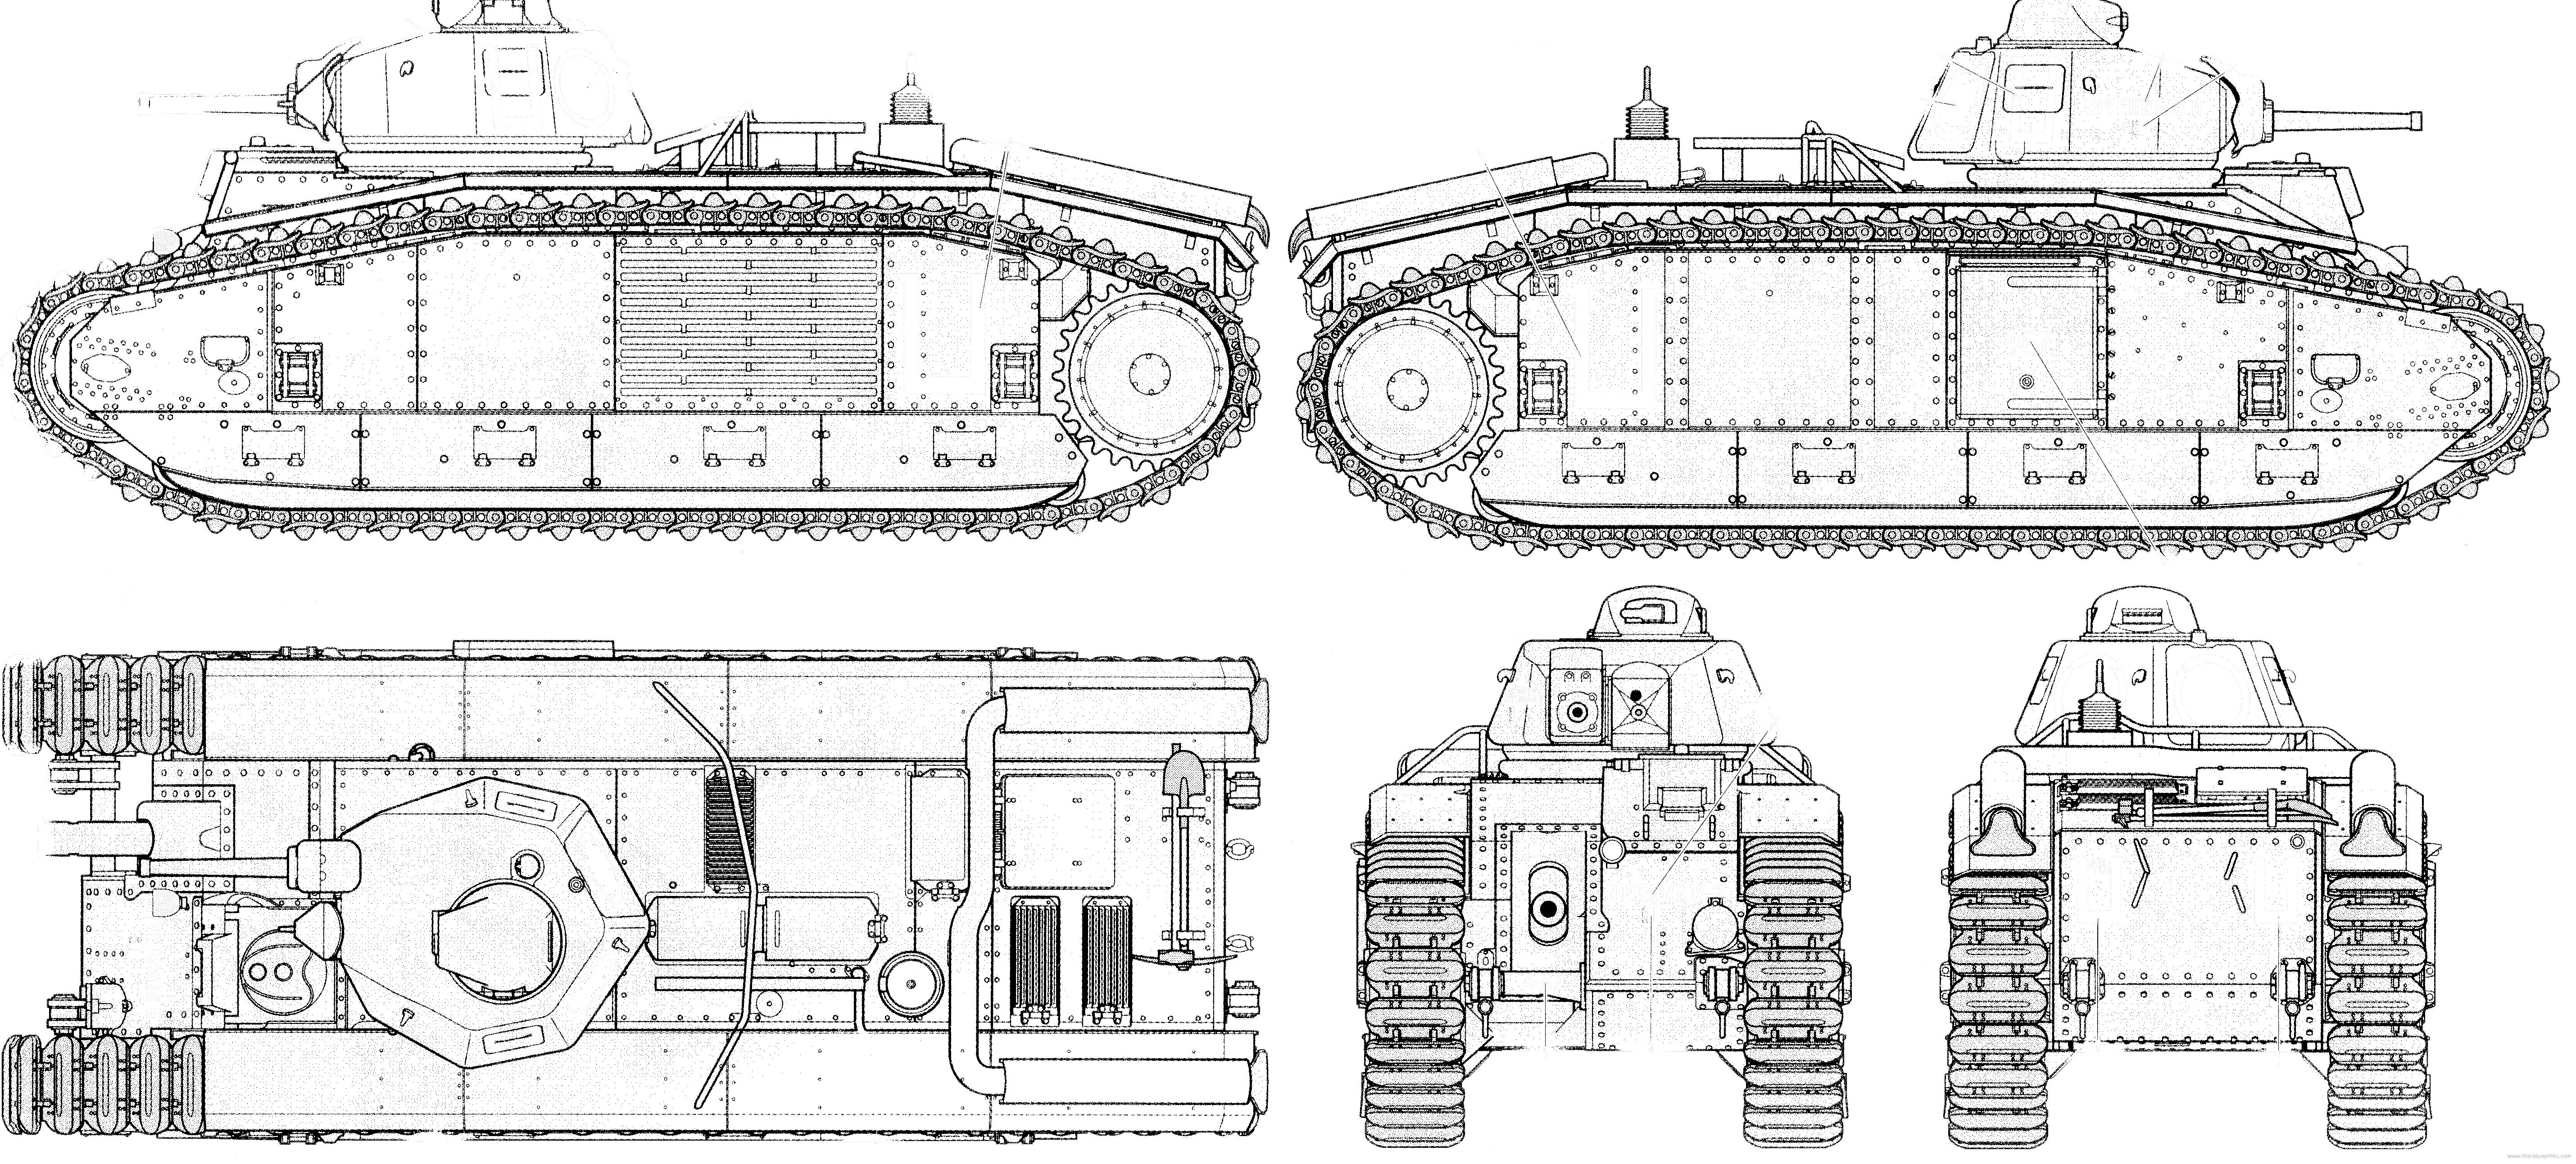 Blueprints tanks tanks b b1bis french tank b1bis french tank malvernweather Image collections